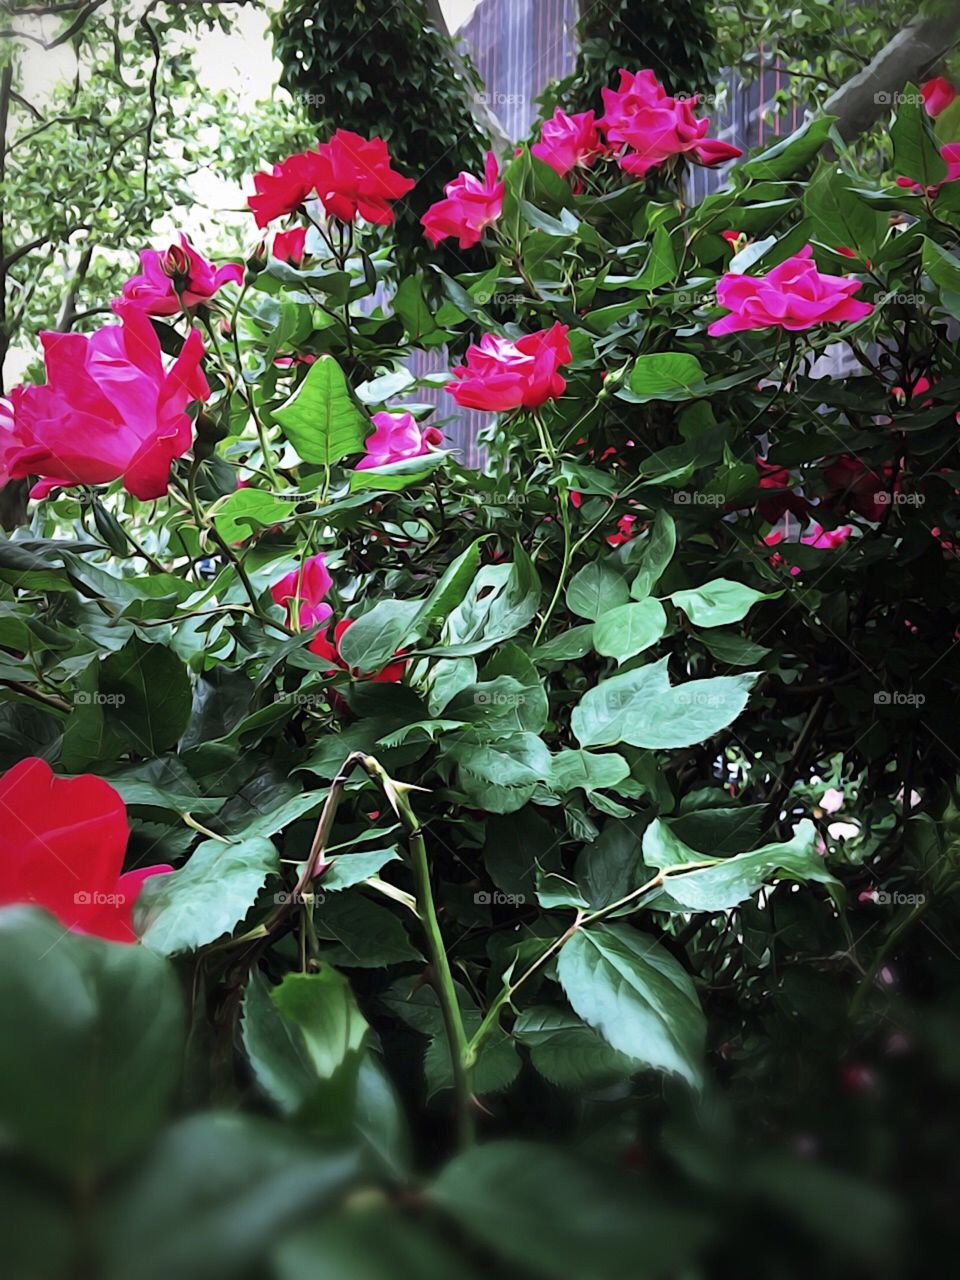 Nature/Landscape/Flowers, Red Roses - Dewitt Clinton Park, Manhattan, New York City. Instagram,@PennyPeronto